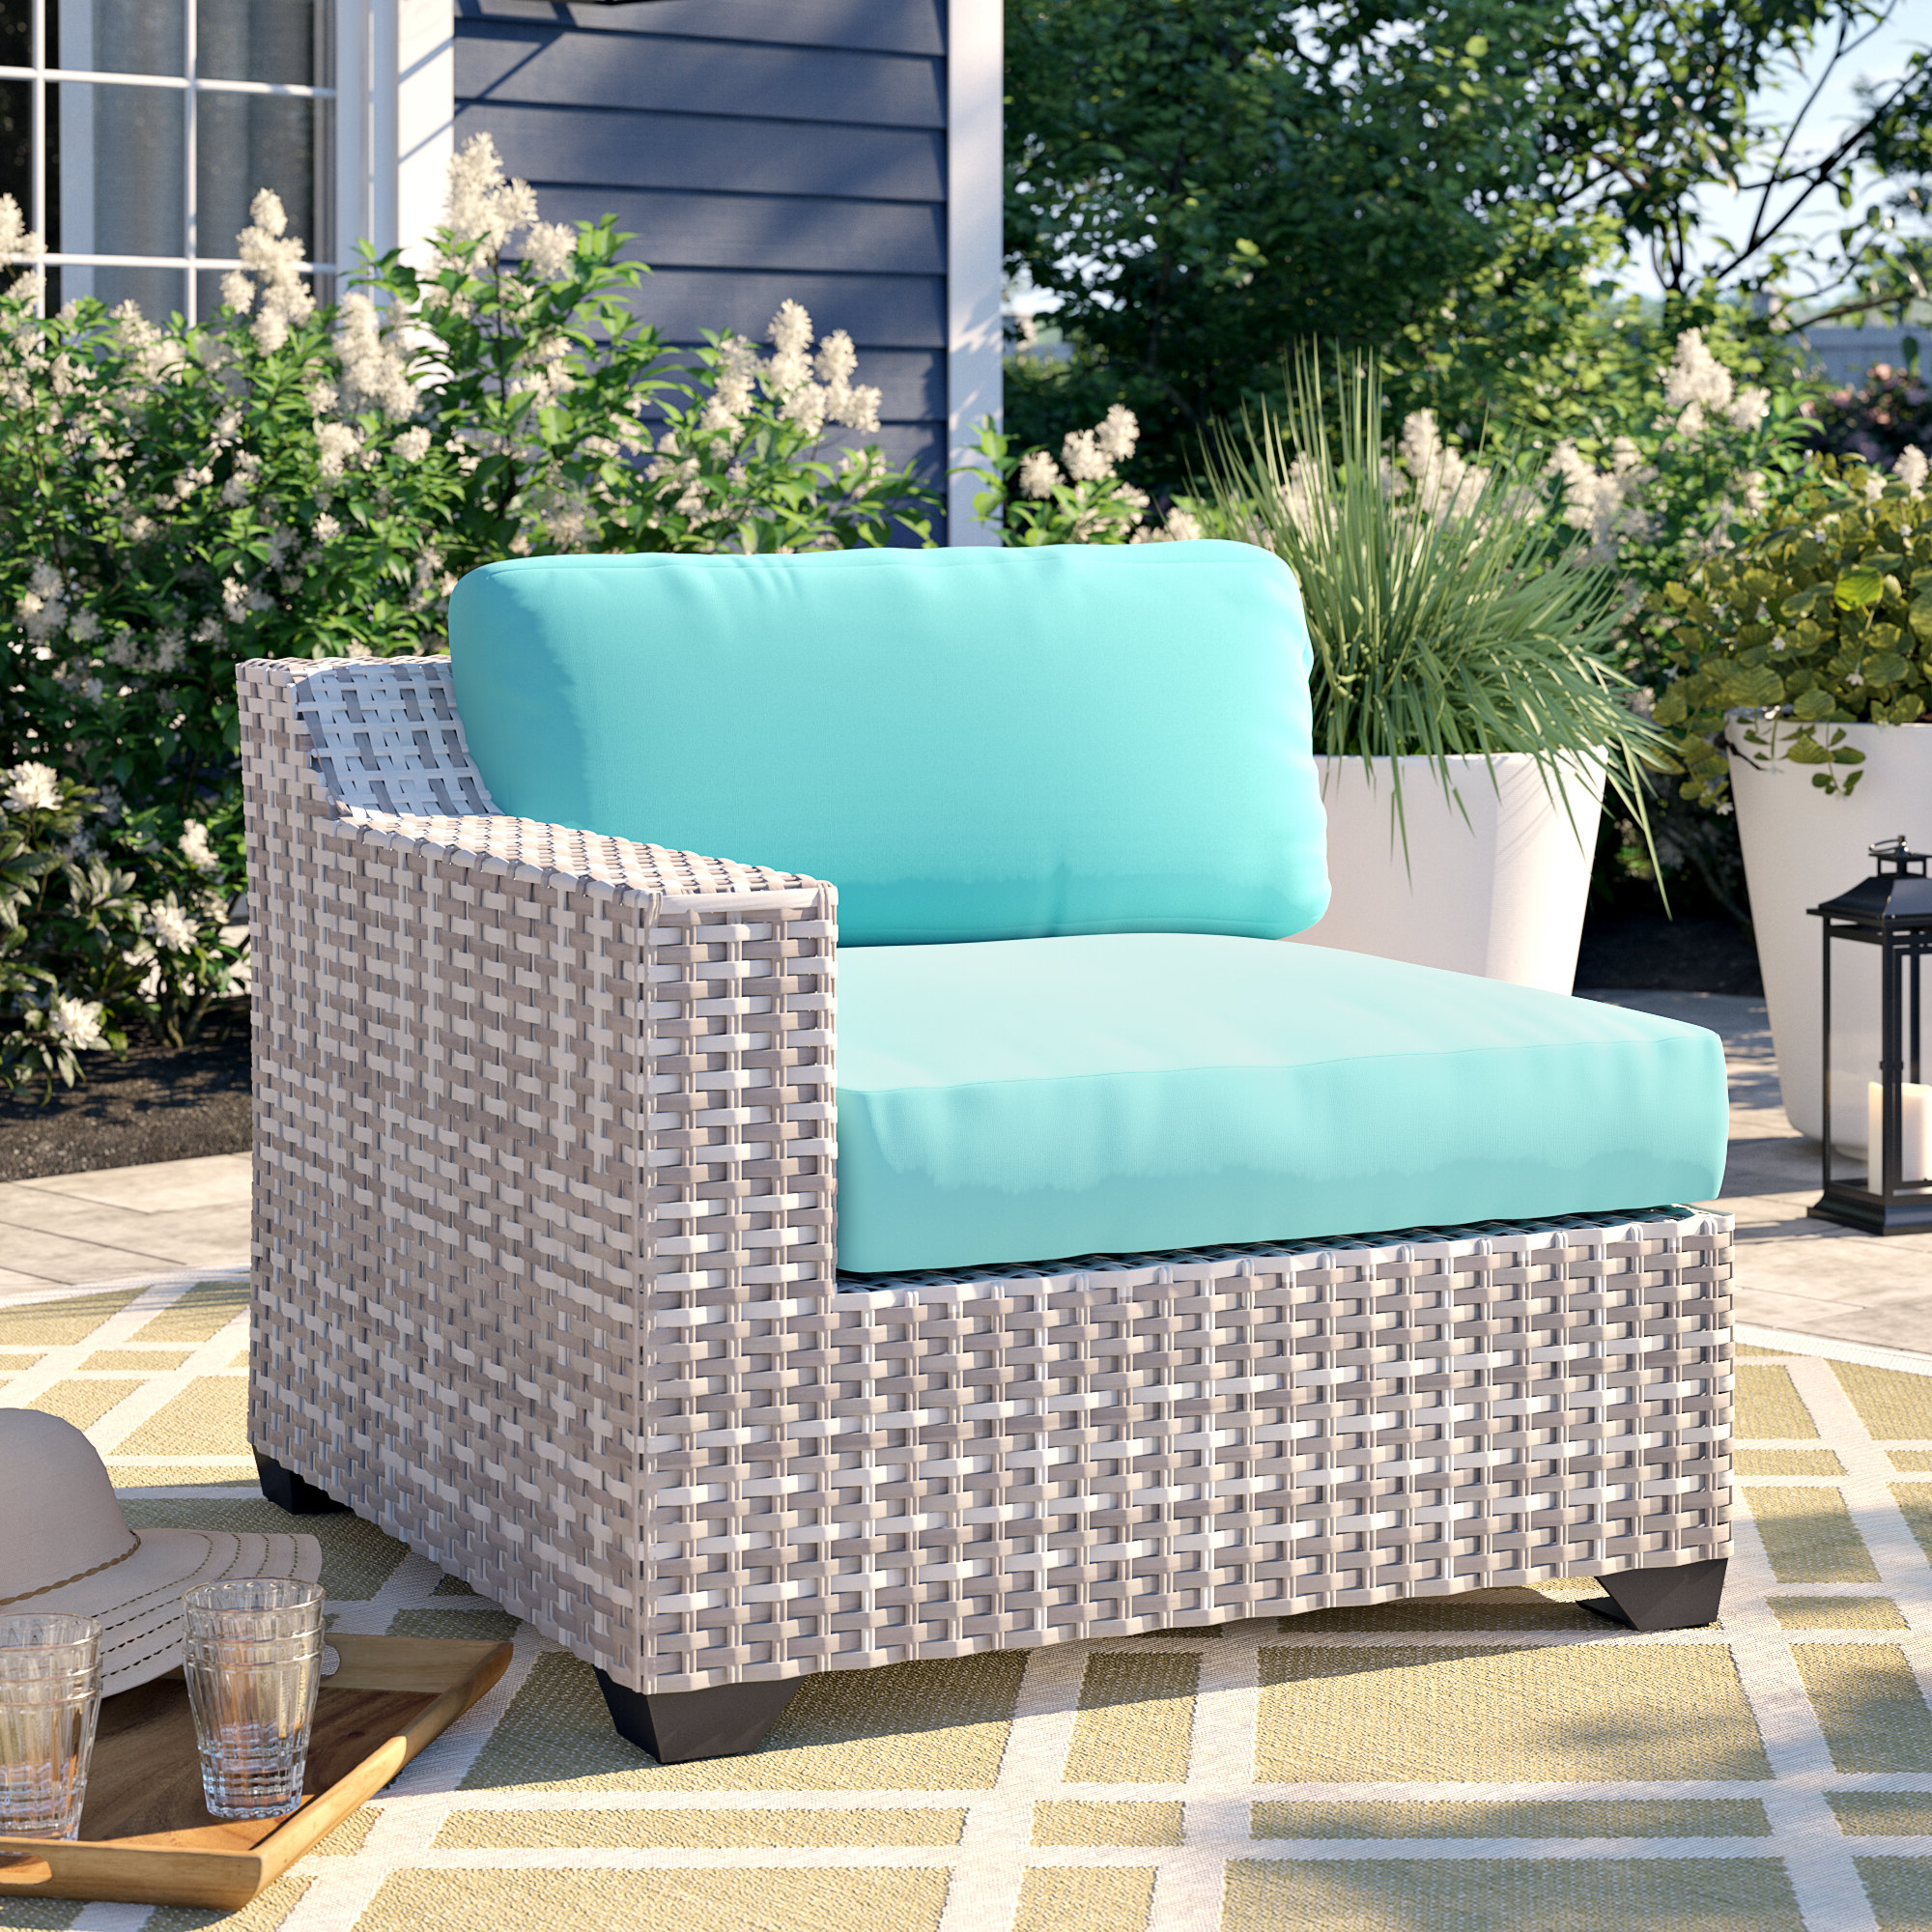 Menifee Loveseats With Cushions Regarding Recent Falmouth Patio Loveseat With Cushions (View 7 of 25)